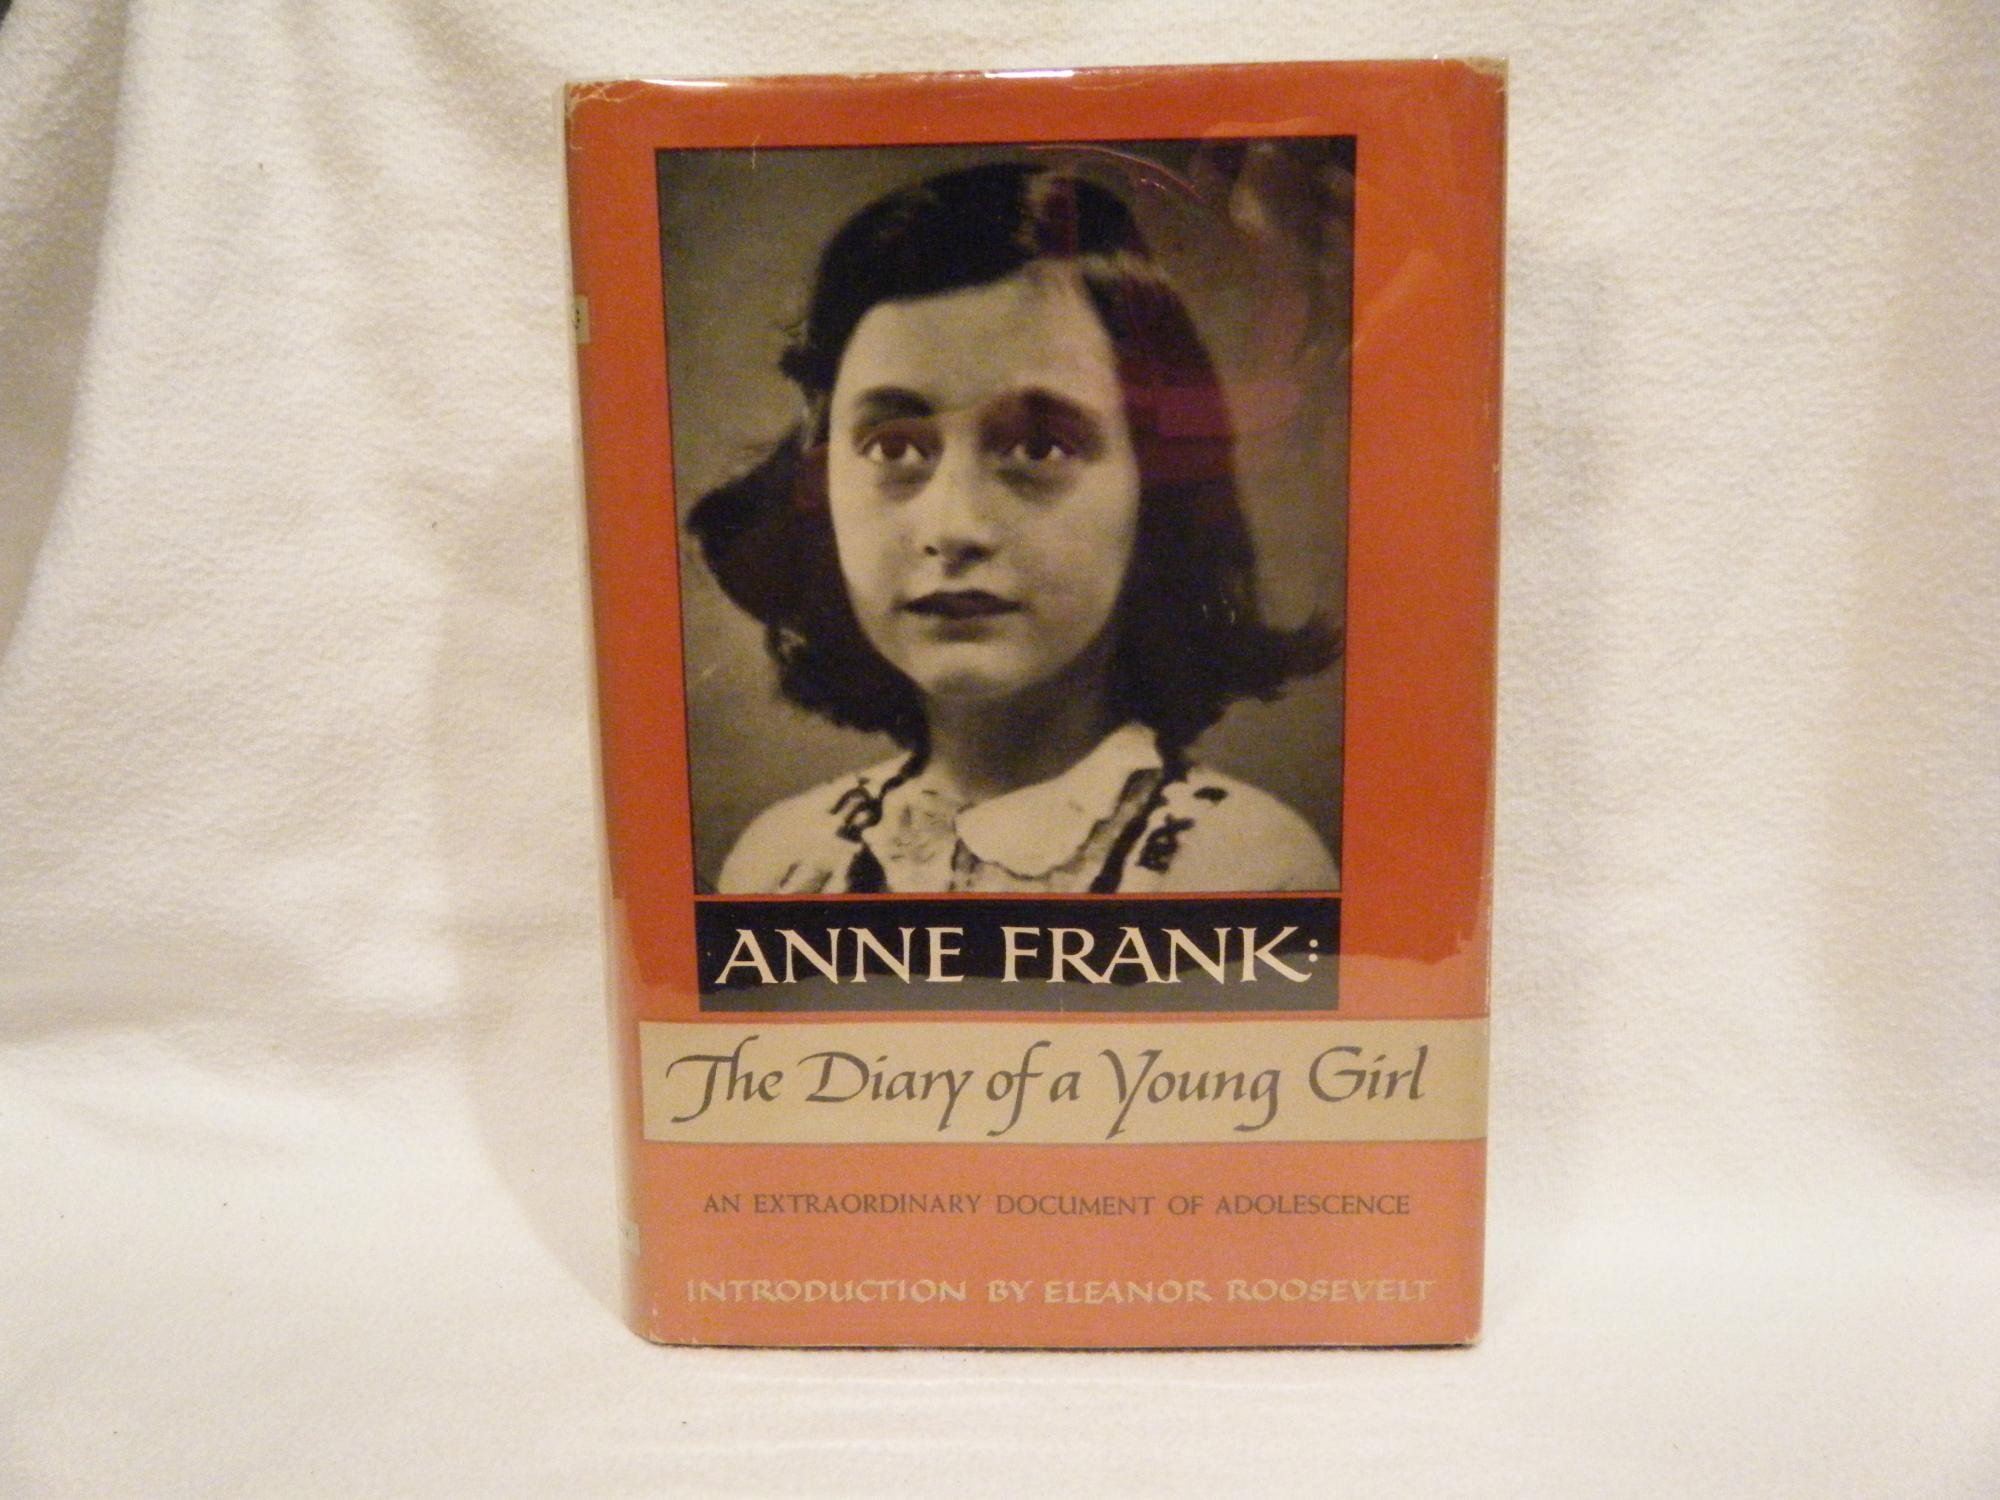 anne frank diary of a young The first american edition, published in 1952 under the title anne frank: the diary of a young girl, was positively reviewed the book was successful in france.